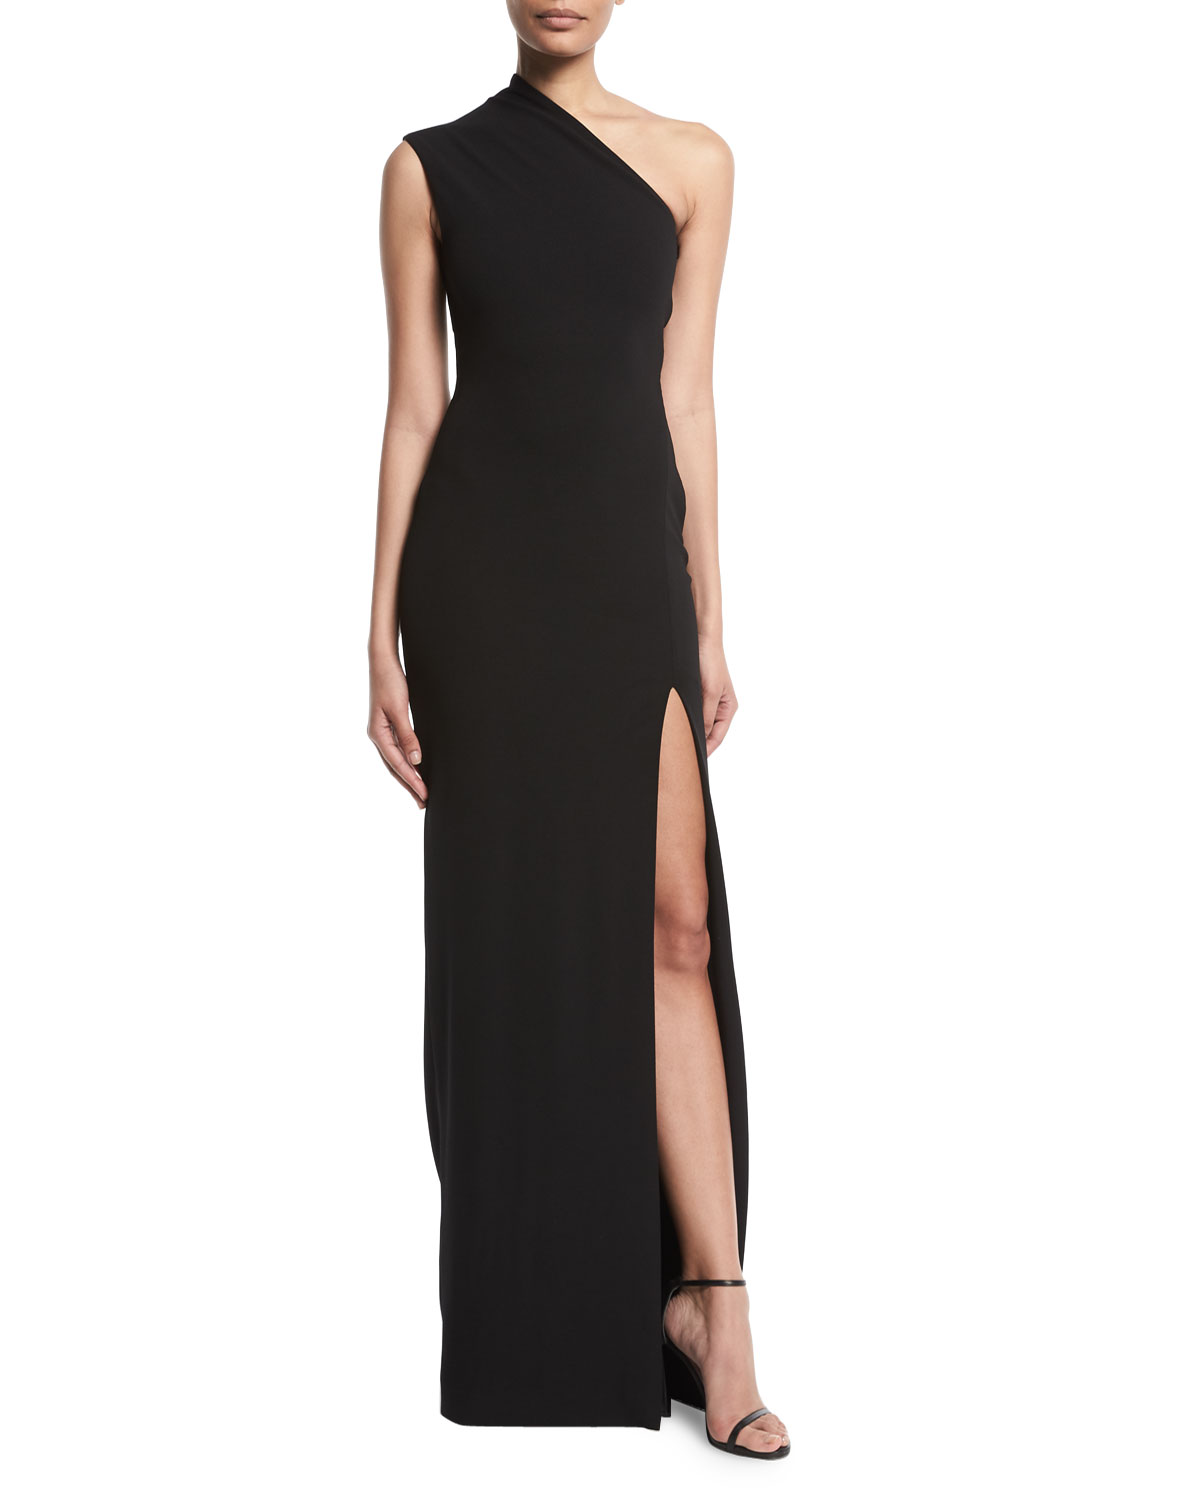 6ab4bdcb9c1 Solace London Averie One-Shoulder Side-Slit Maxi Dress